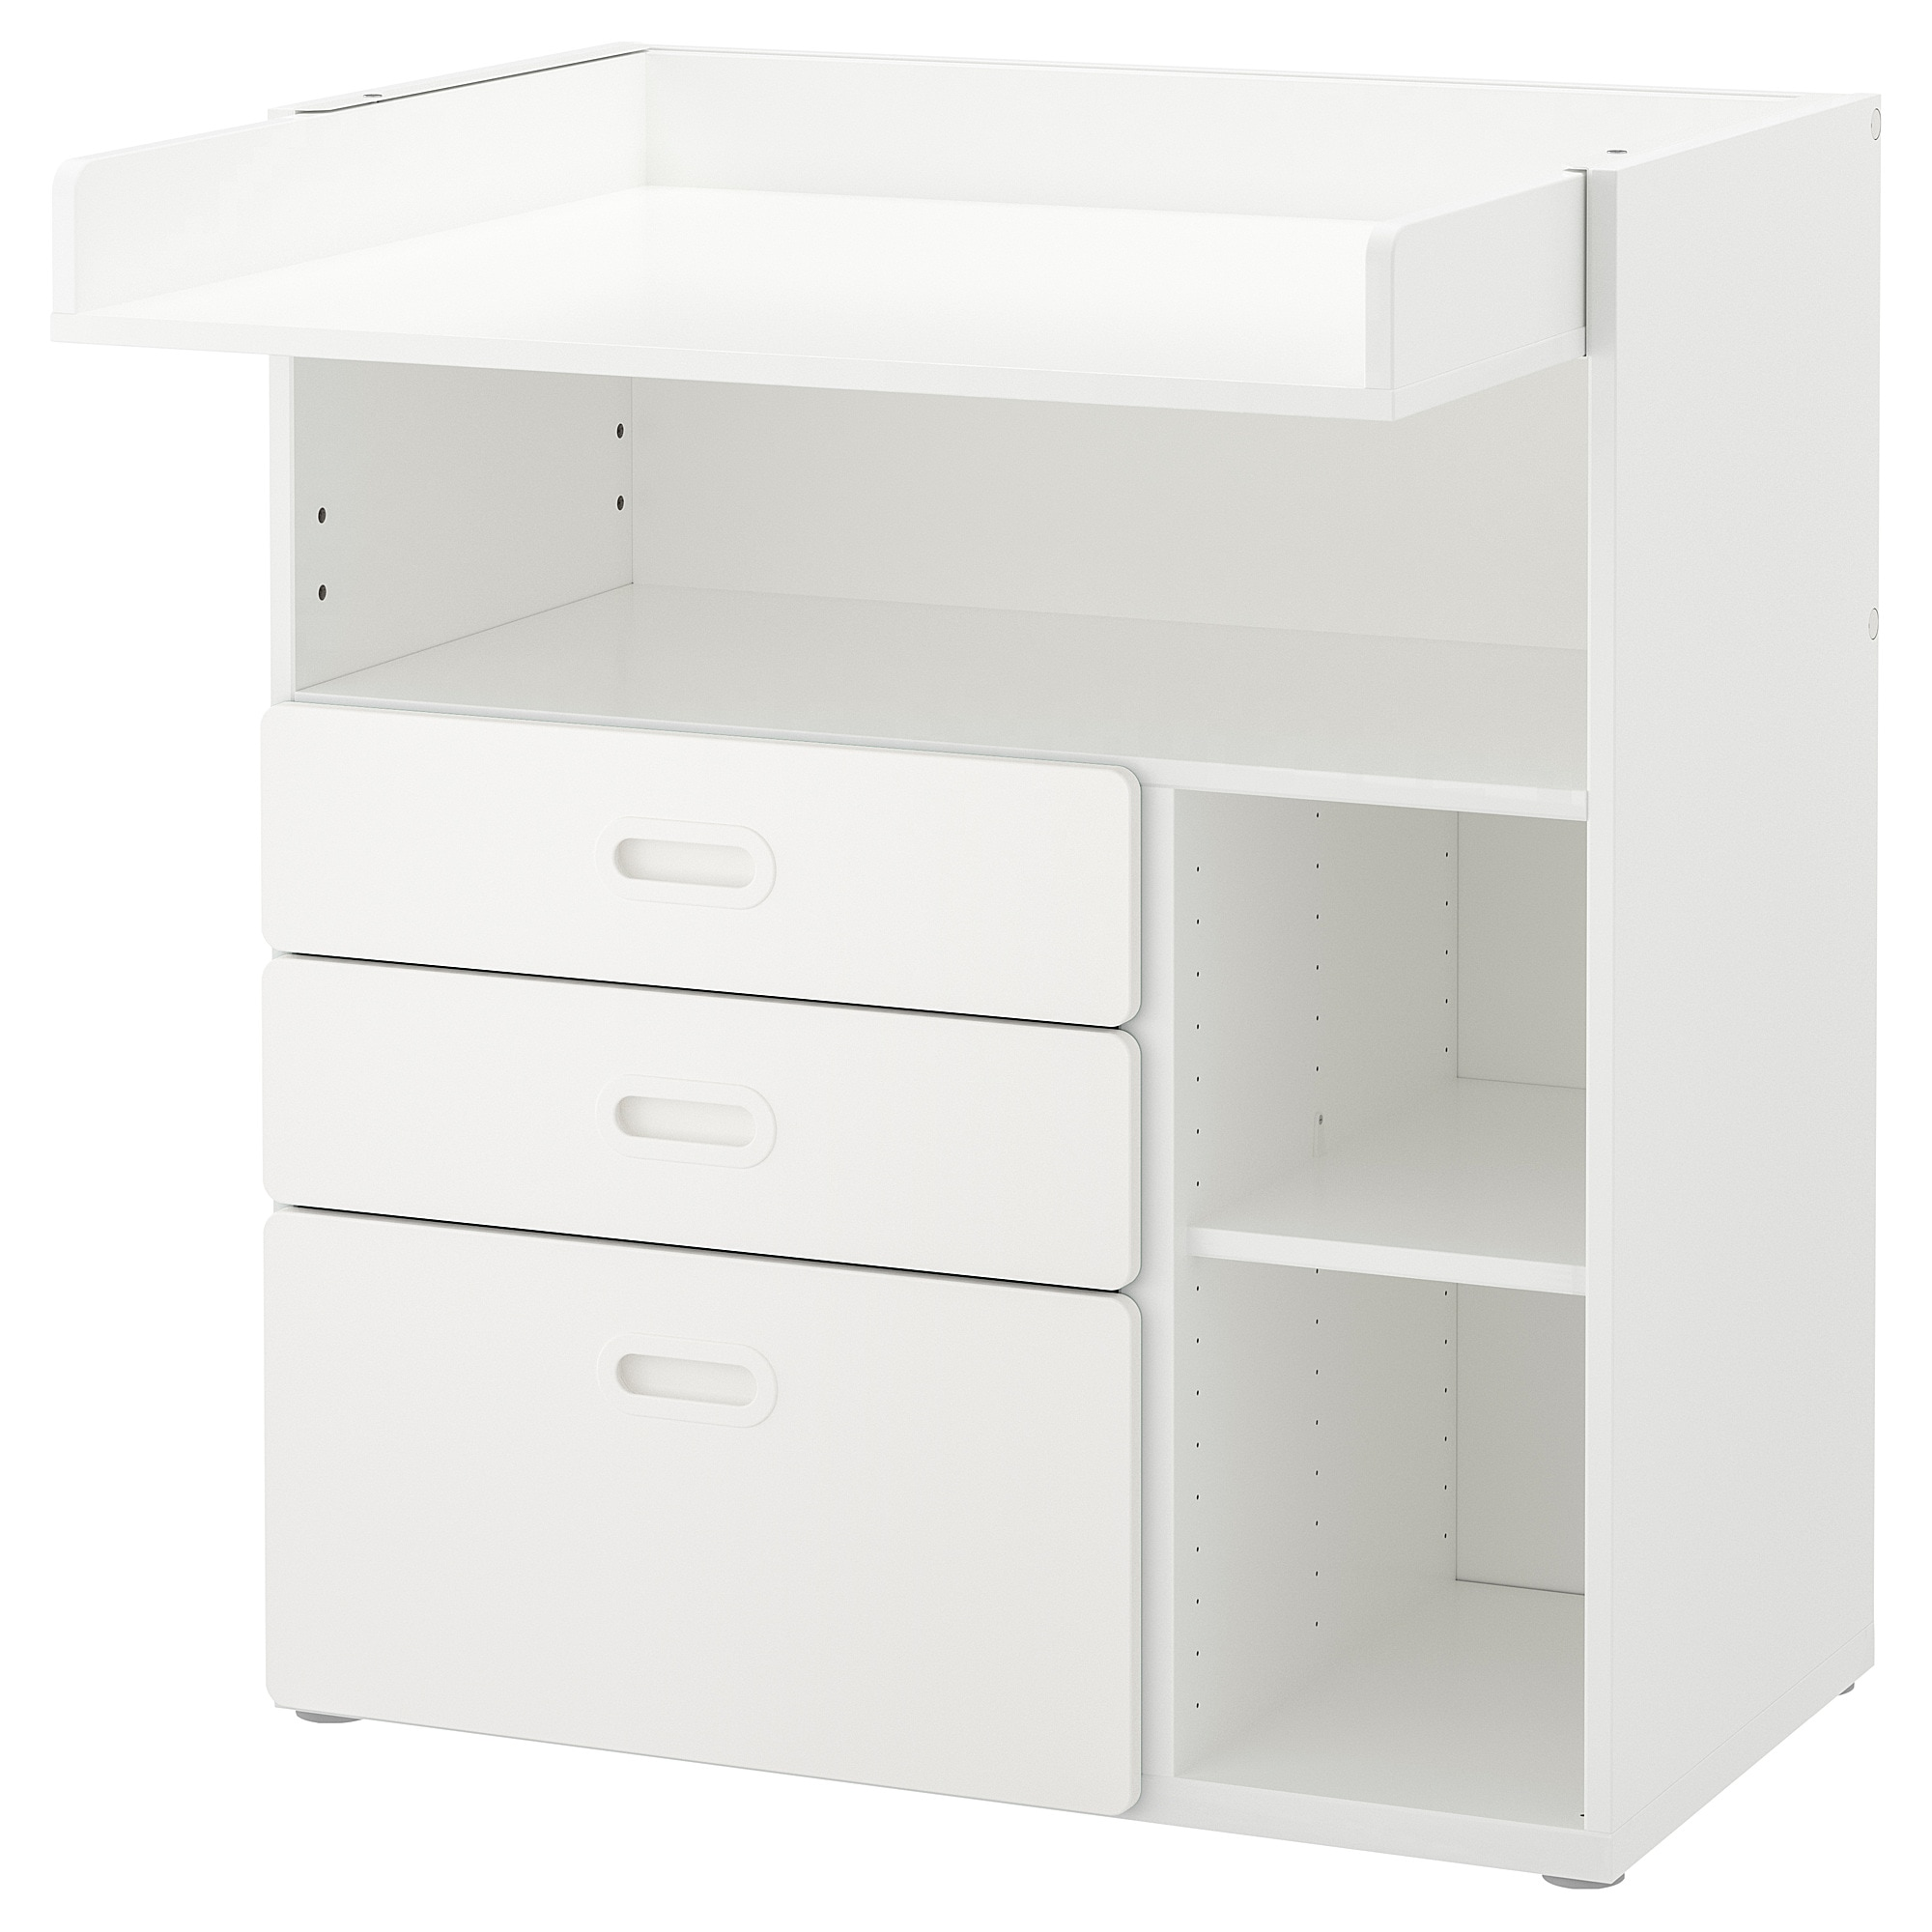 475c991346ad STUVA / FRITIDS Changing table with drawers, white, white, 90x79x102 cm